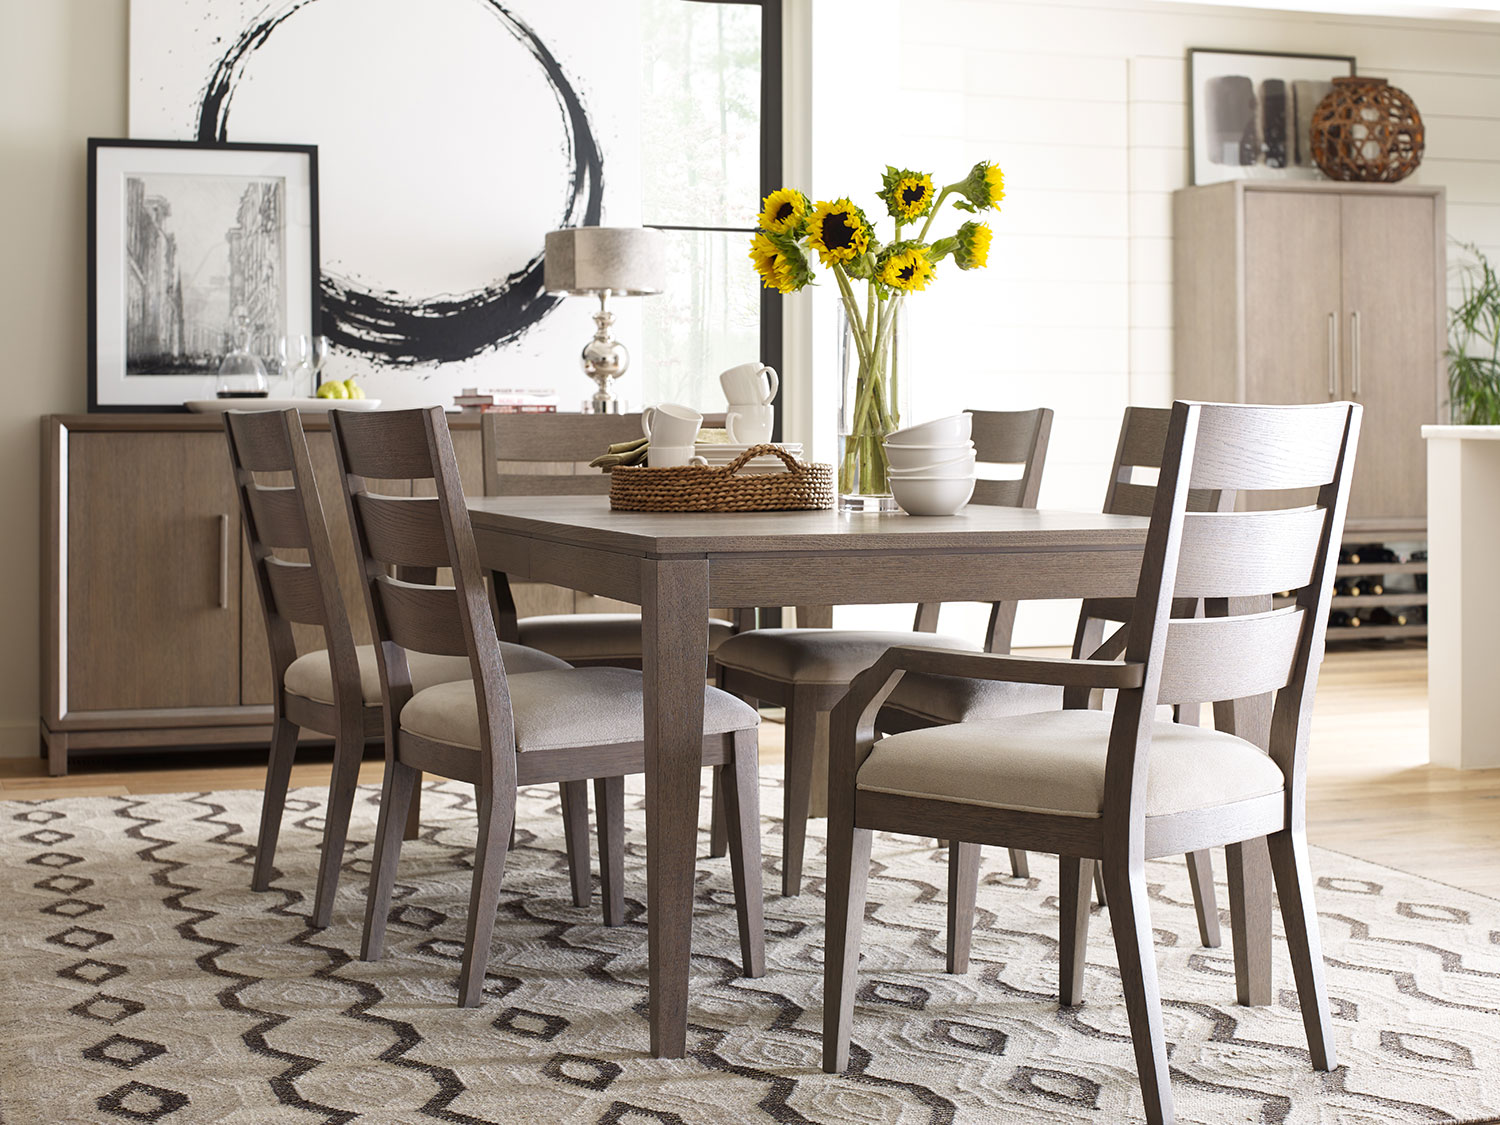 The rachael ray highline dining room collection greige for Dining room collections